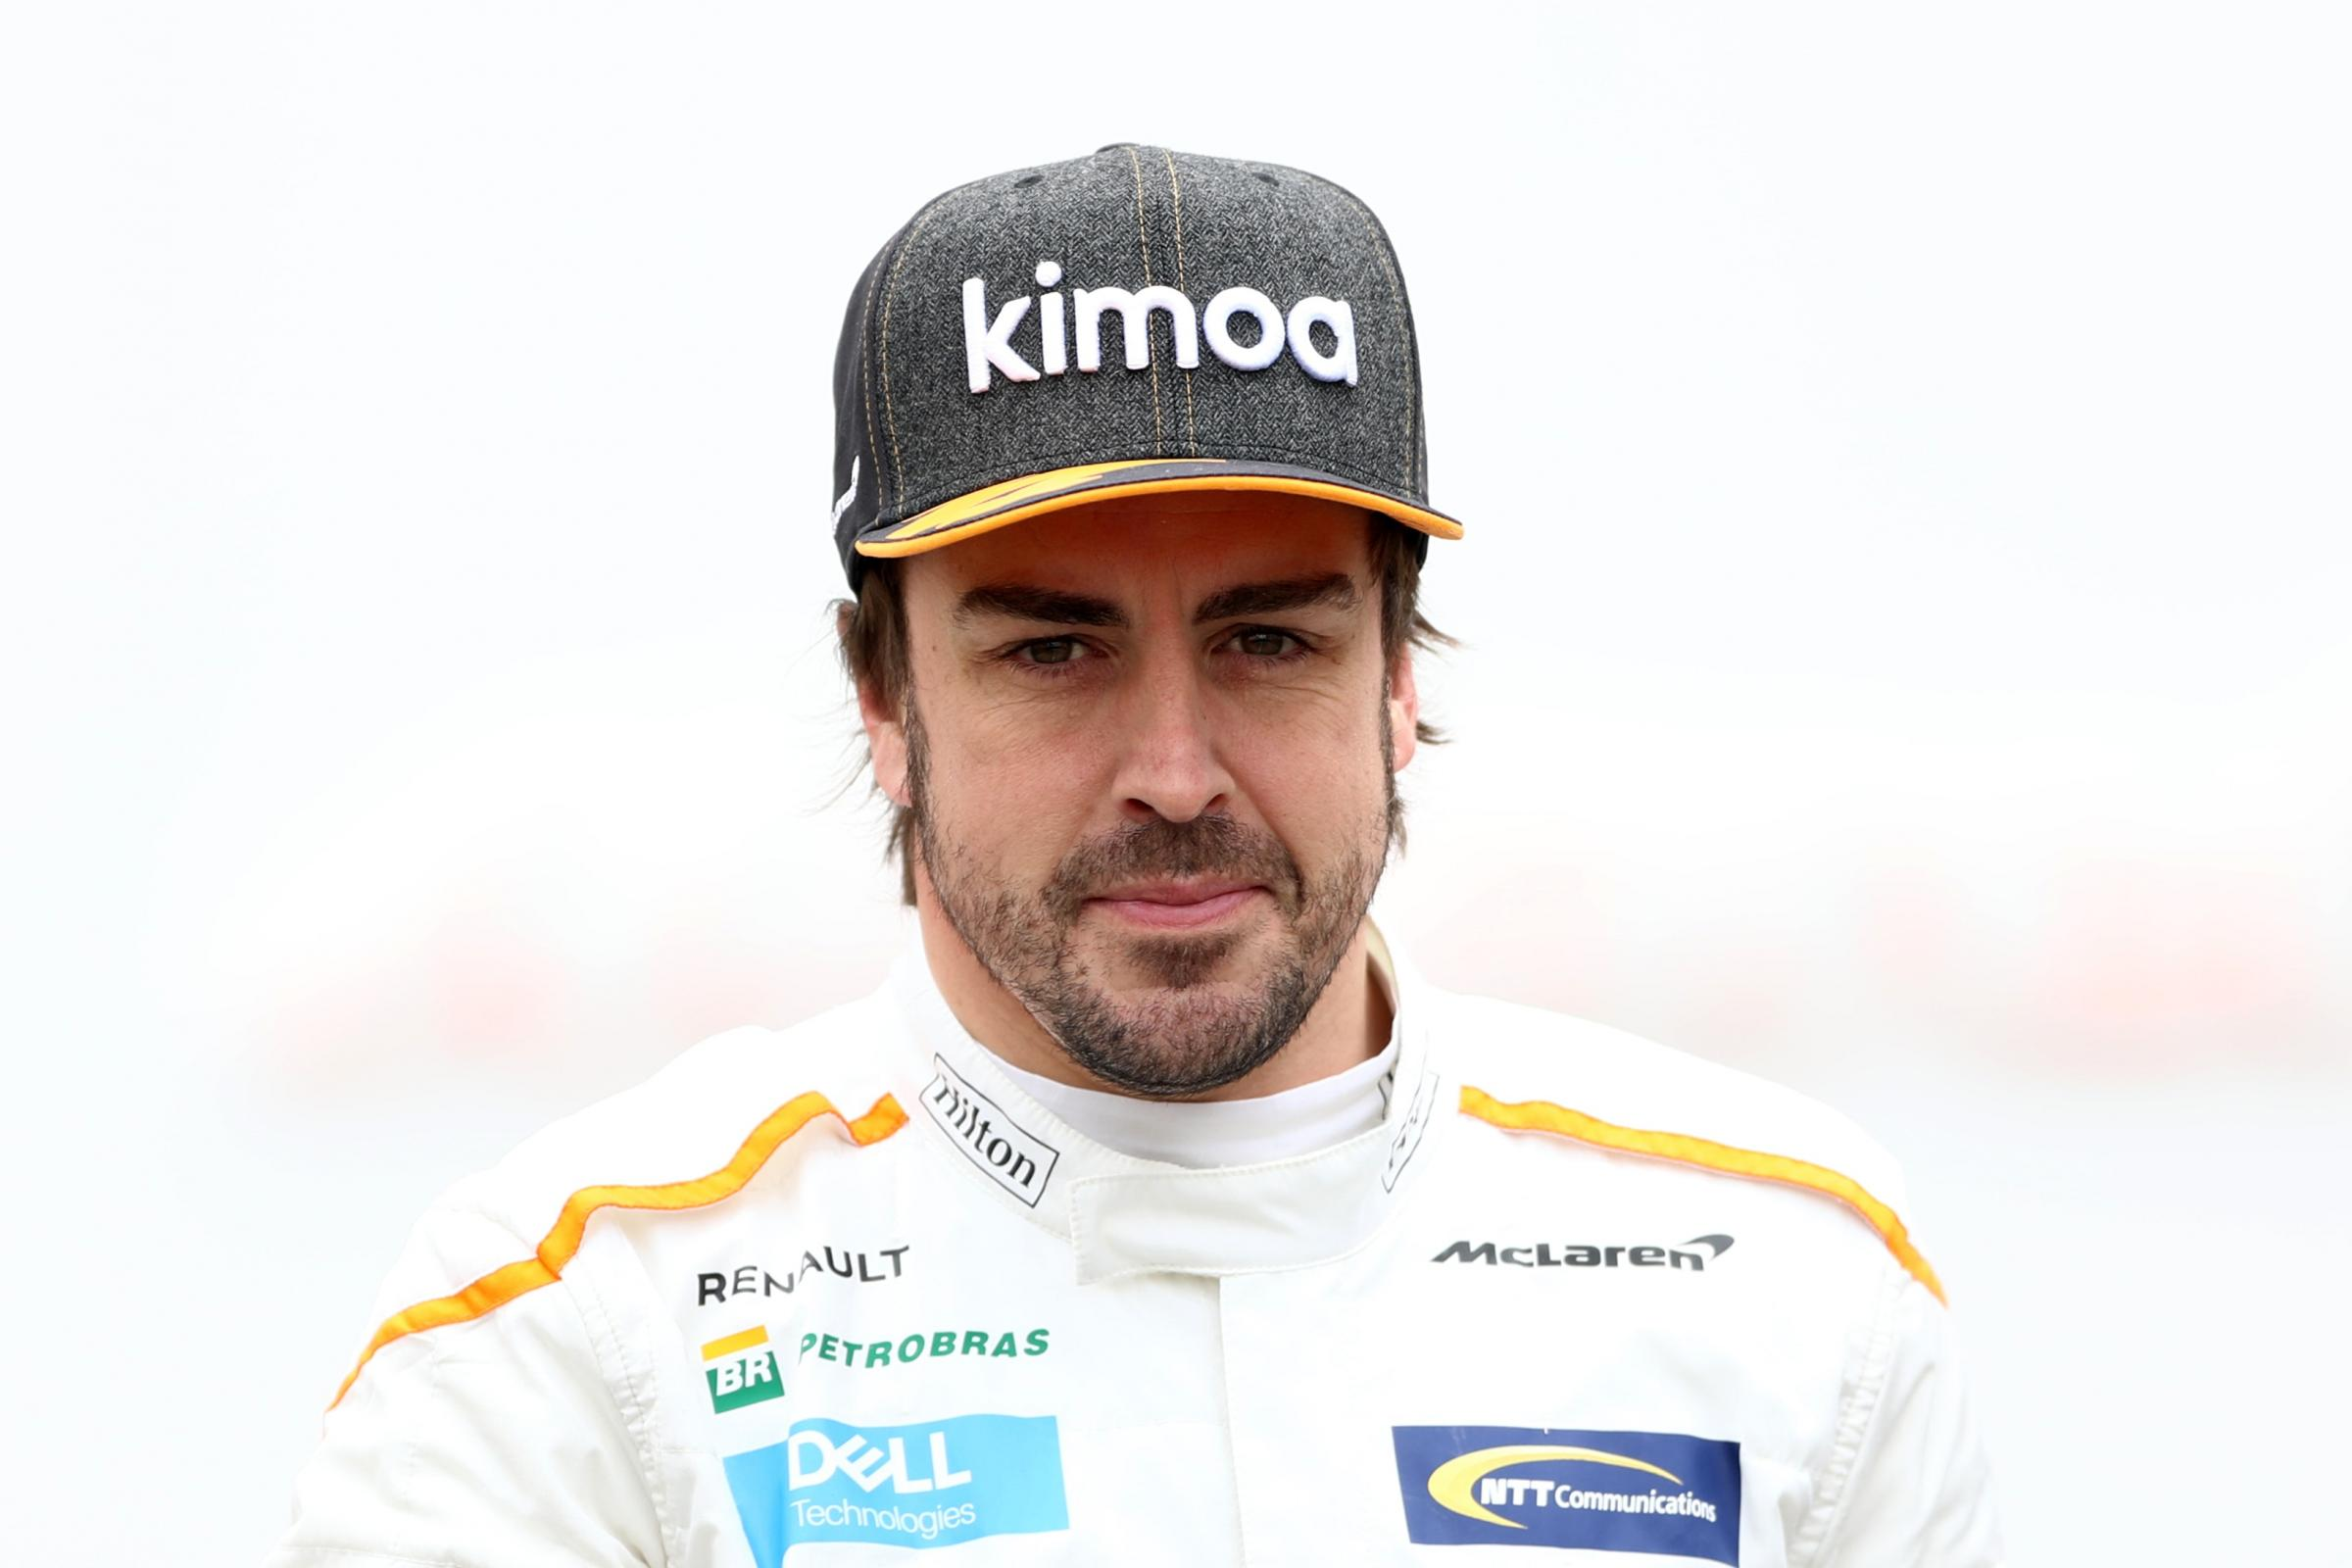 Alonso will not compete in F1 next year